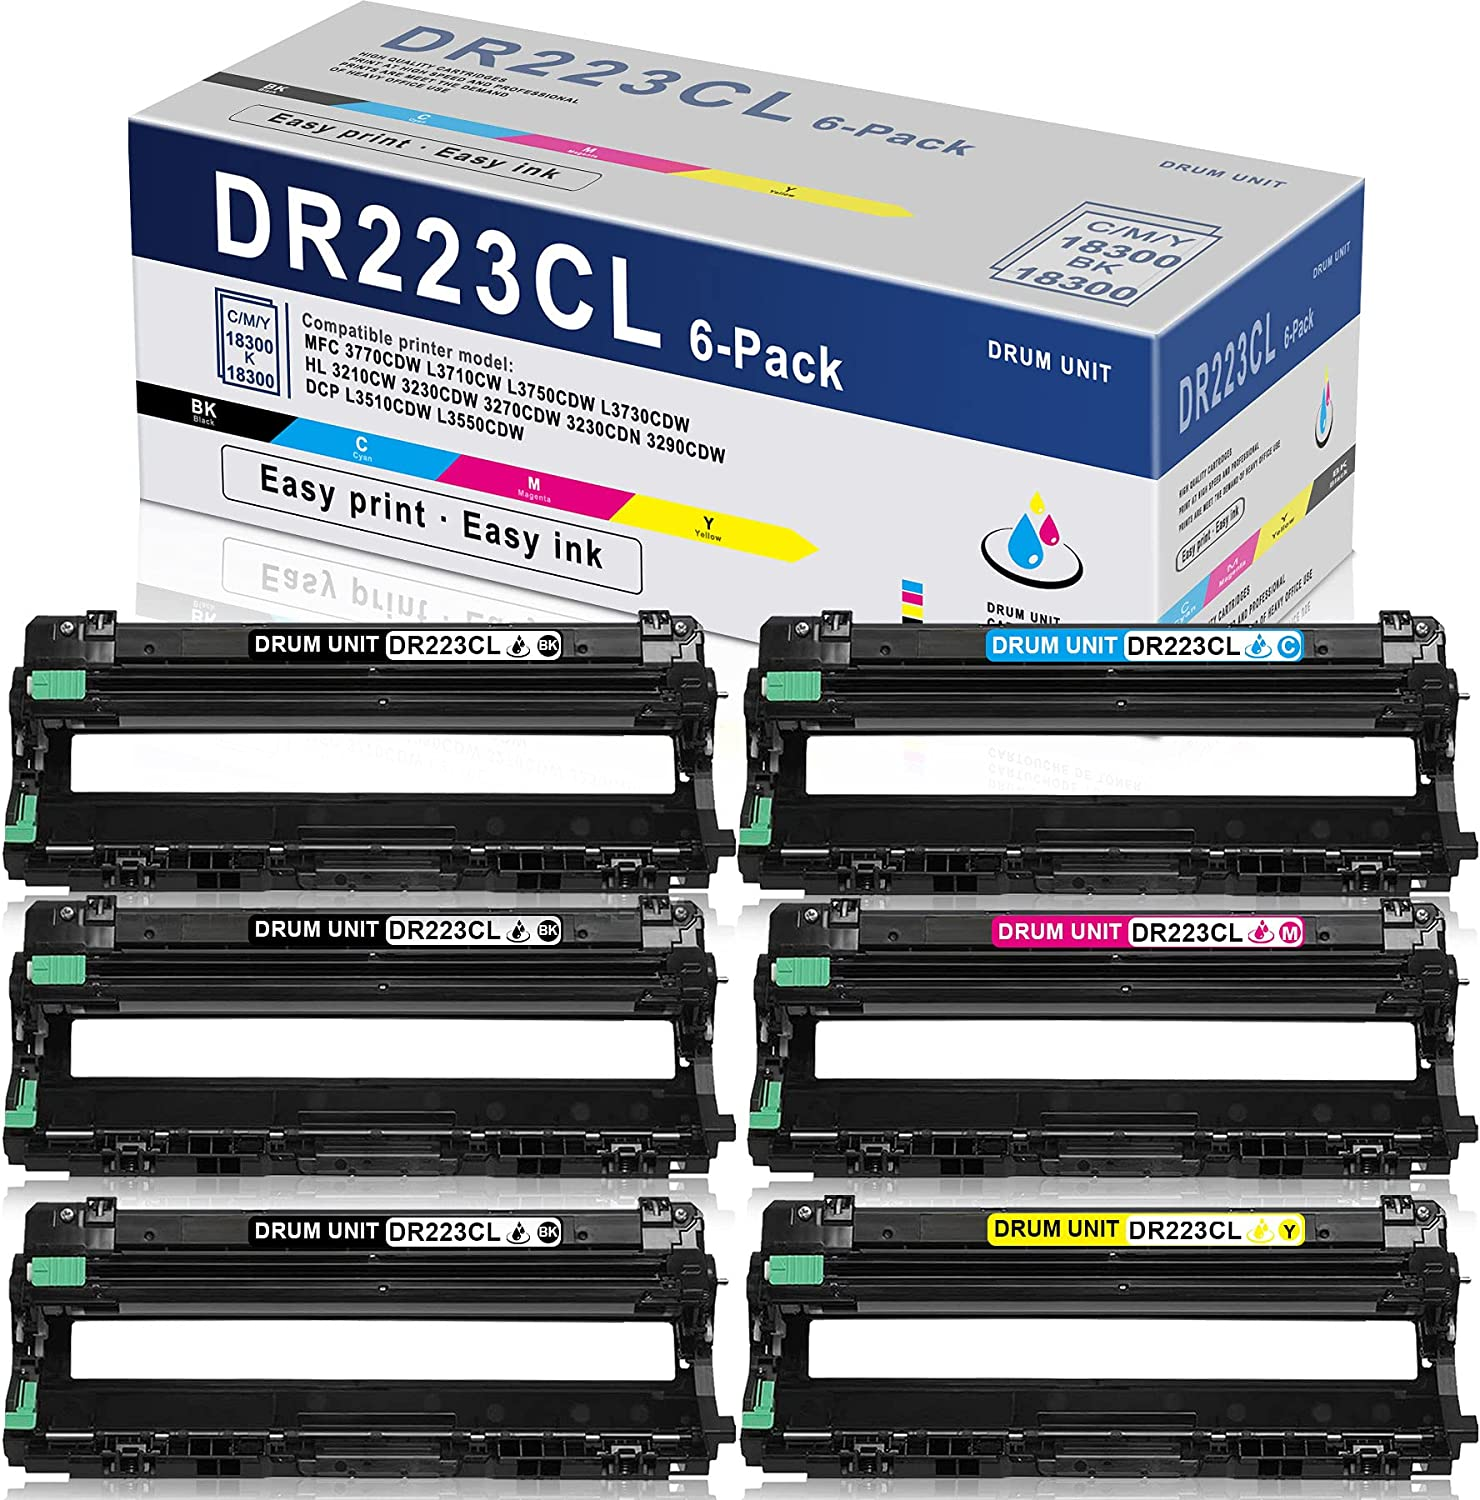 6PK (3BK+1C+1M+1Y) High Yield Drum Unit DR223CL DR-223CL Compatible Replacement for Brother MFC 3770CDW L3710CW L3750CDW L3730CDW HL 3230CDW 3270CDW 3230CDN 3290CDW DCP L3510CDW L3550CDW Printer